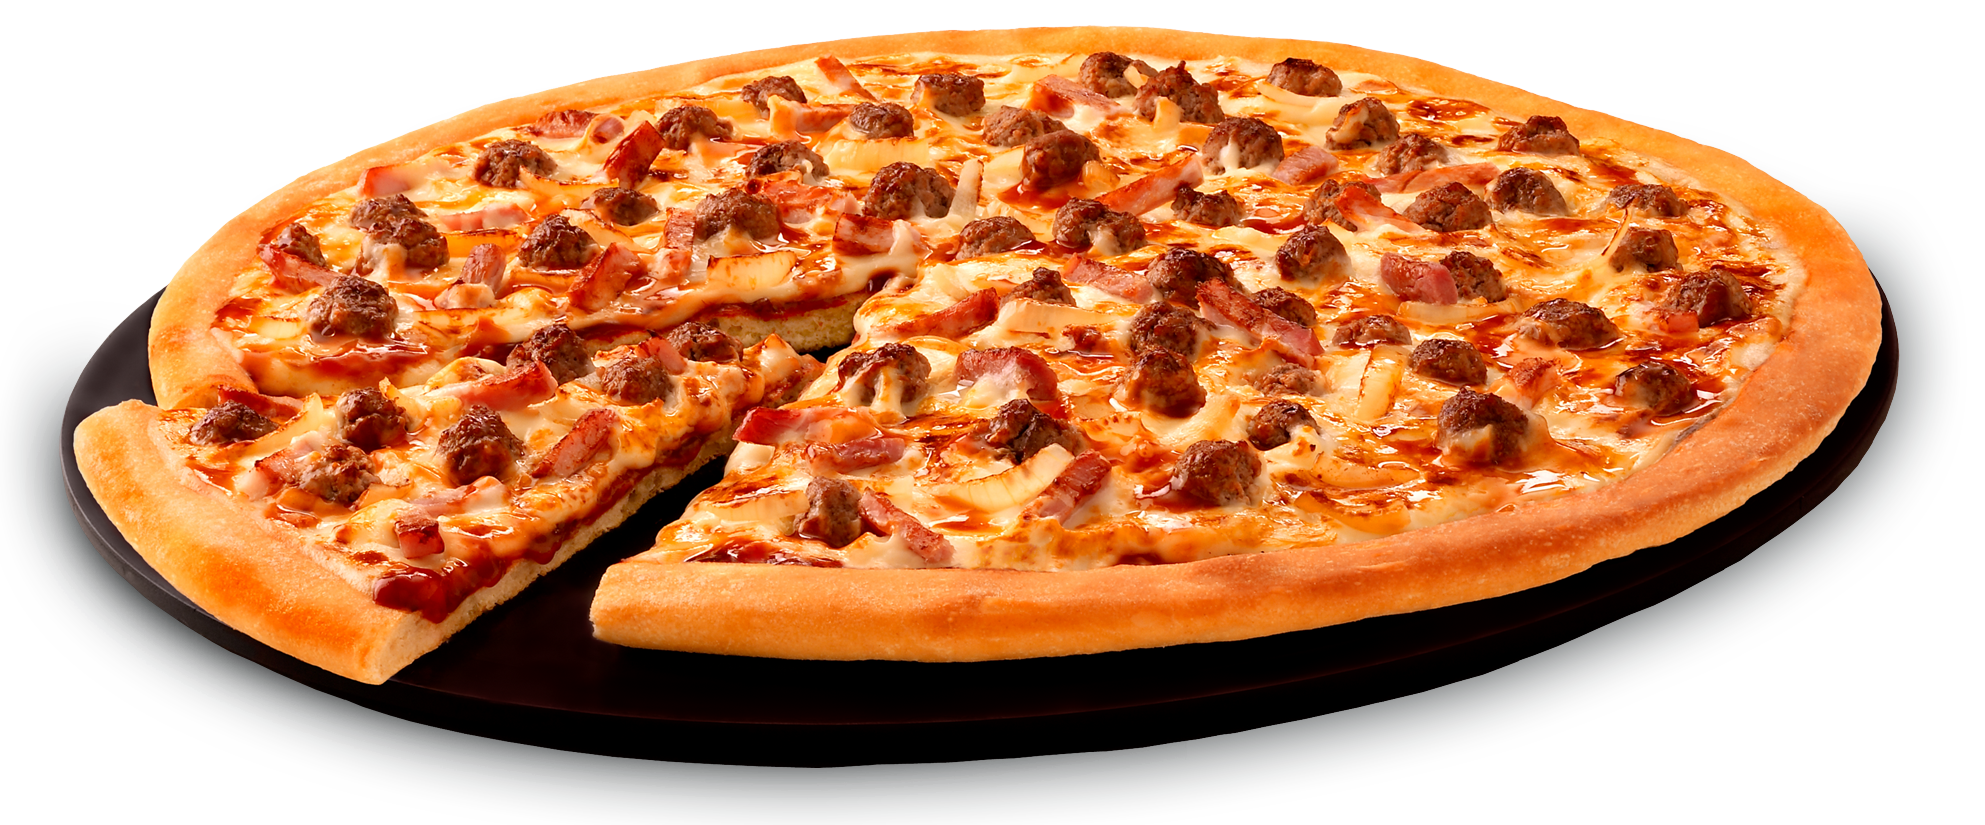 Pizza Png image #19363